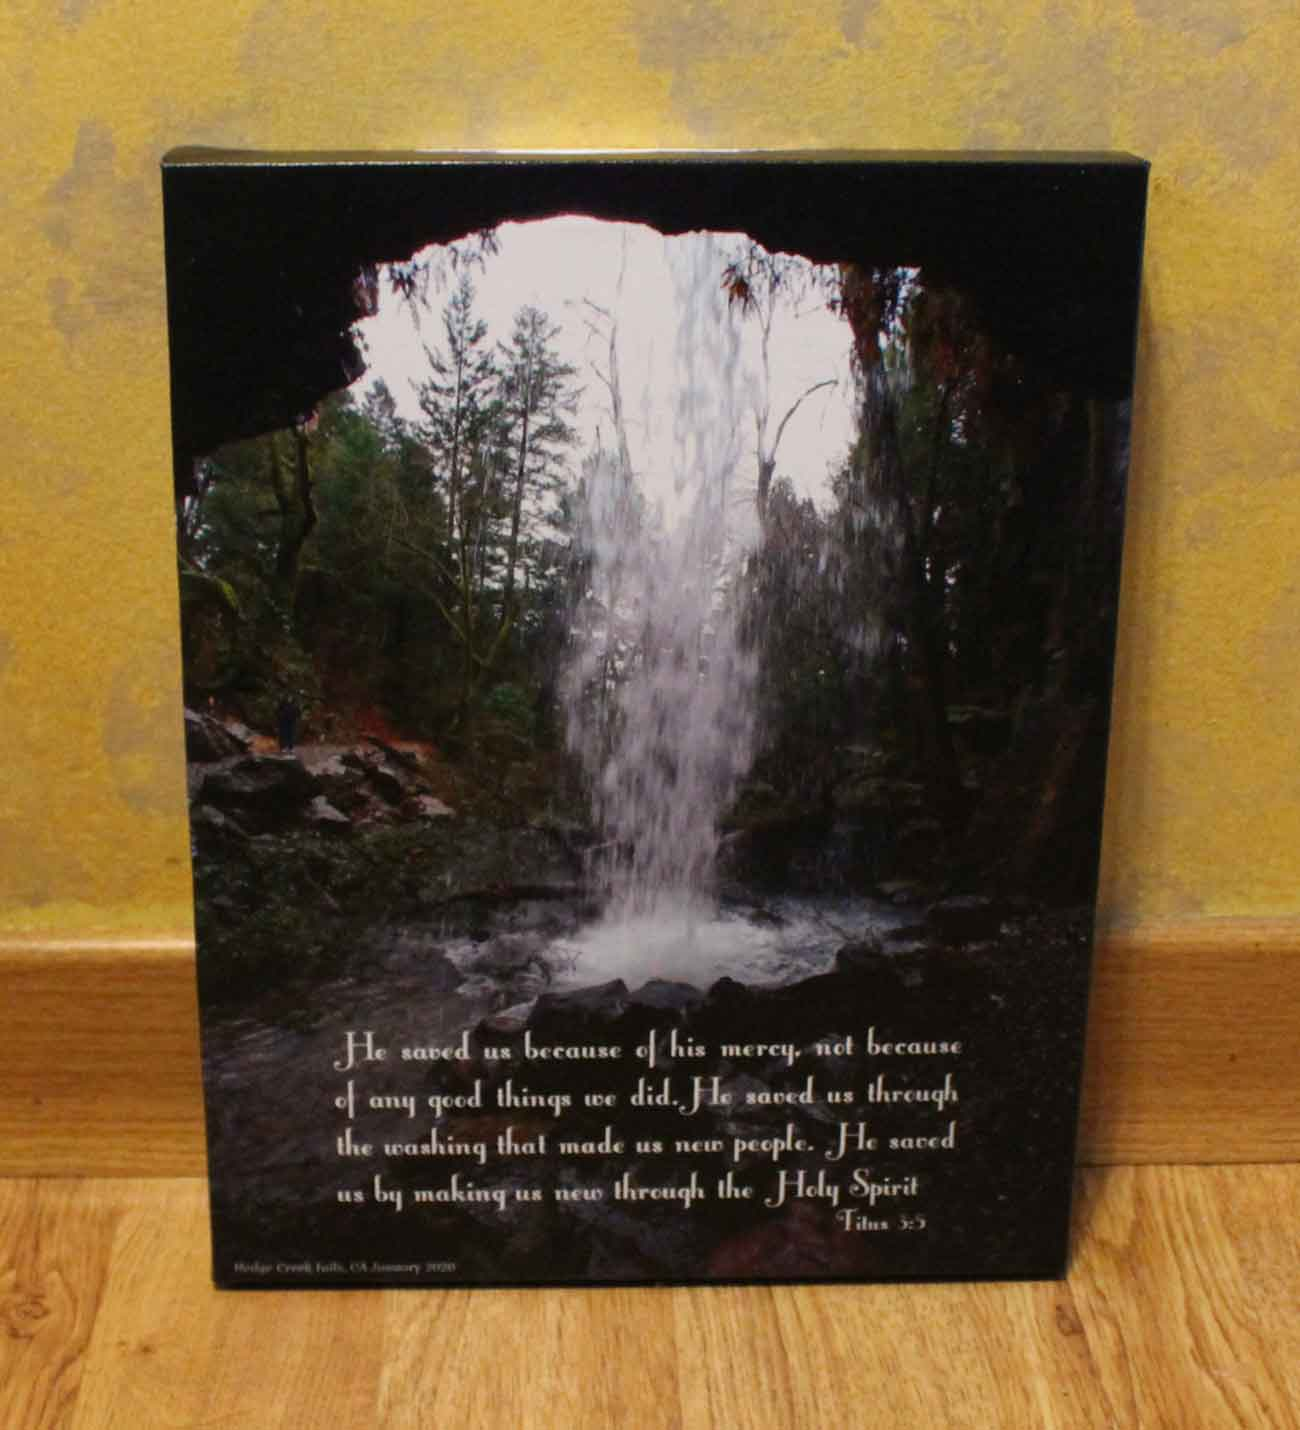 Hedge Creek Falls Photograph UV Printed on Canvas Titus 3:5 Scripture